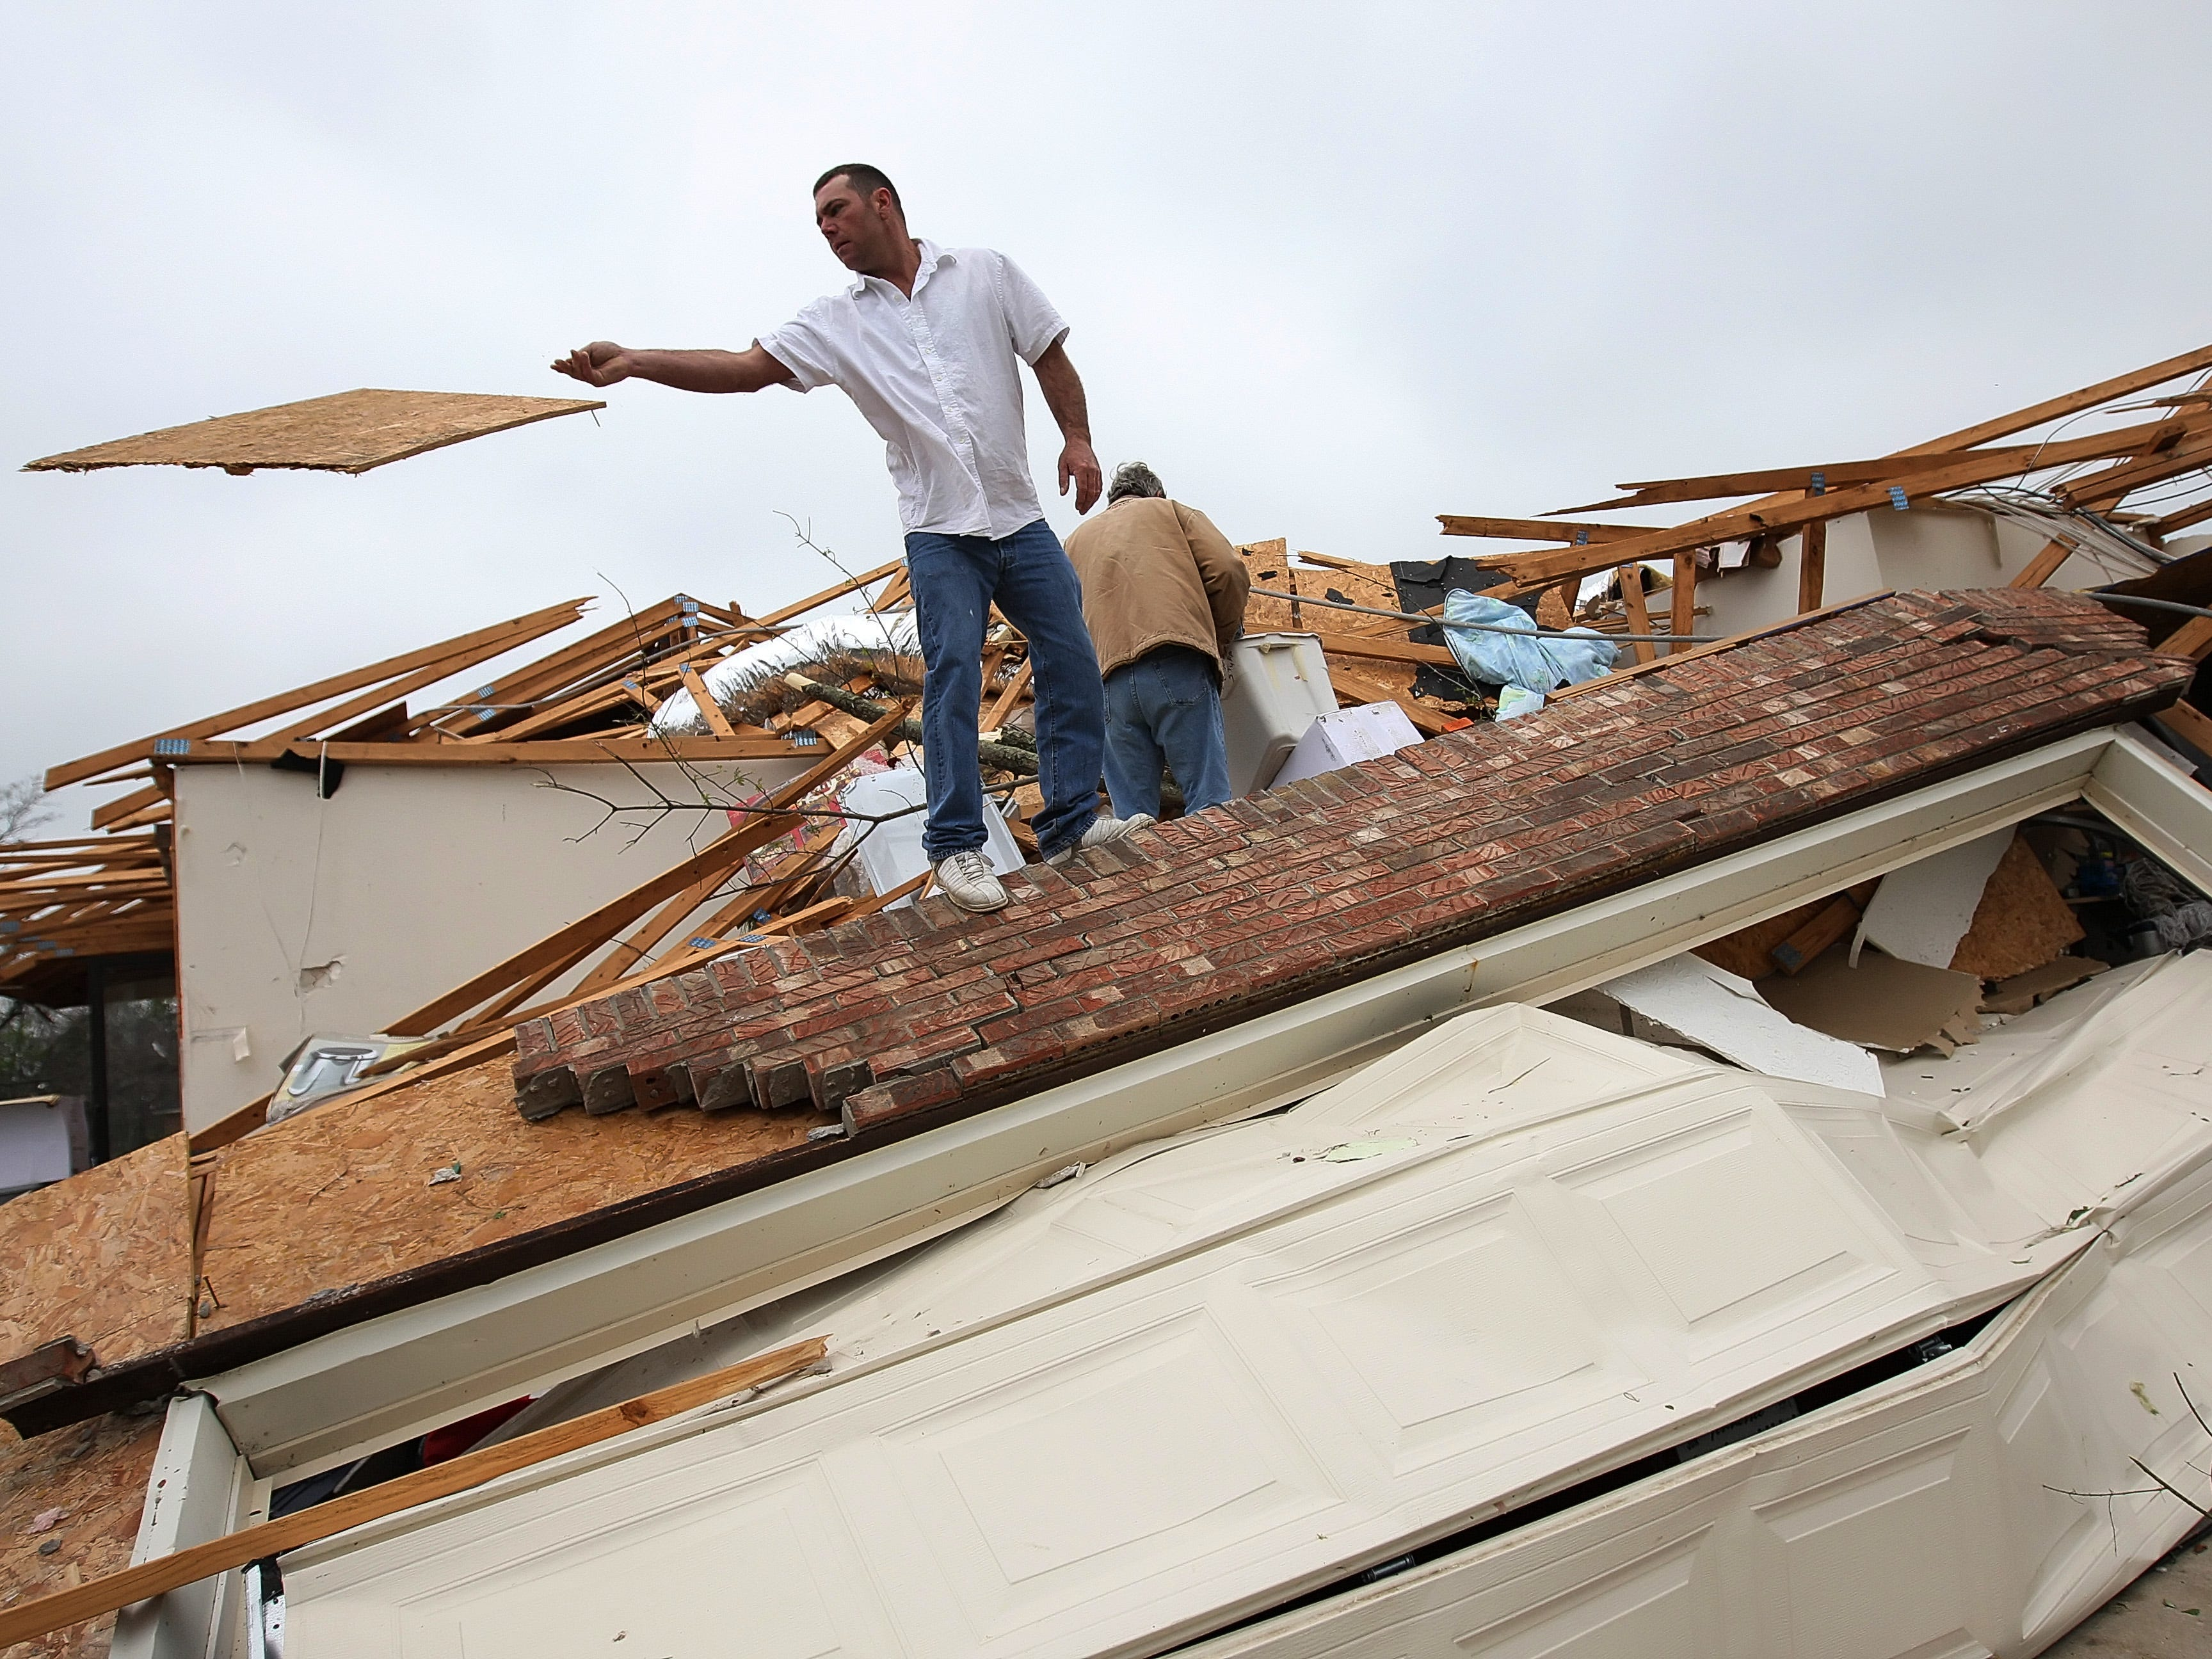 Rick Laster helps to clean up the home of Dave Norwood, not pictured, after Norwoods home was badly damaged in the tornado in Murfreesboro, Tennessee on Saturday April 11, 2009. (Josh Anderson for The Tennessean)